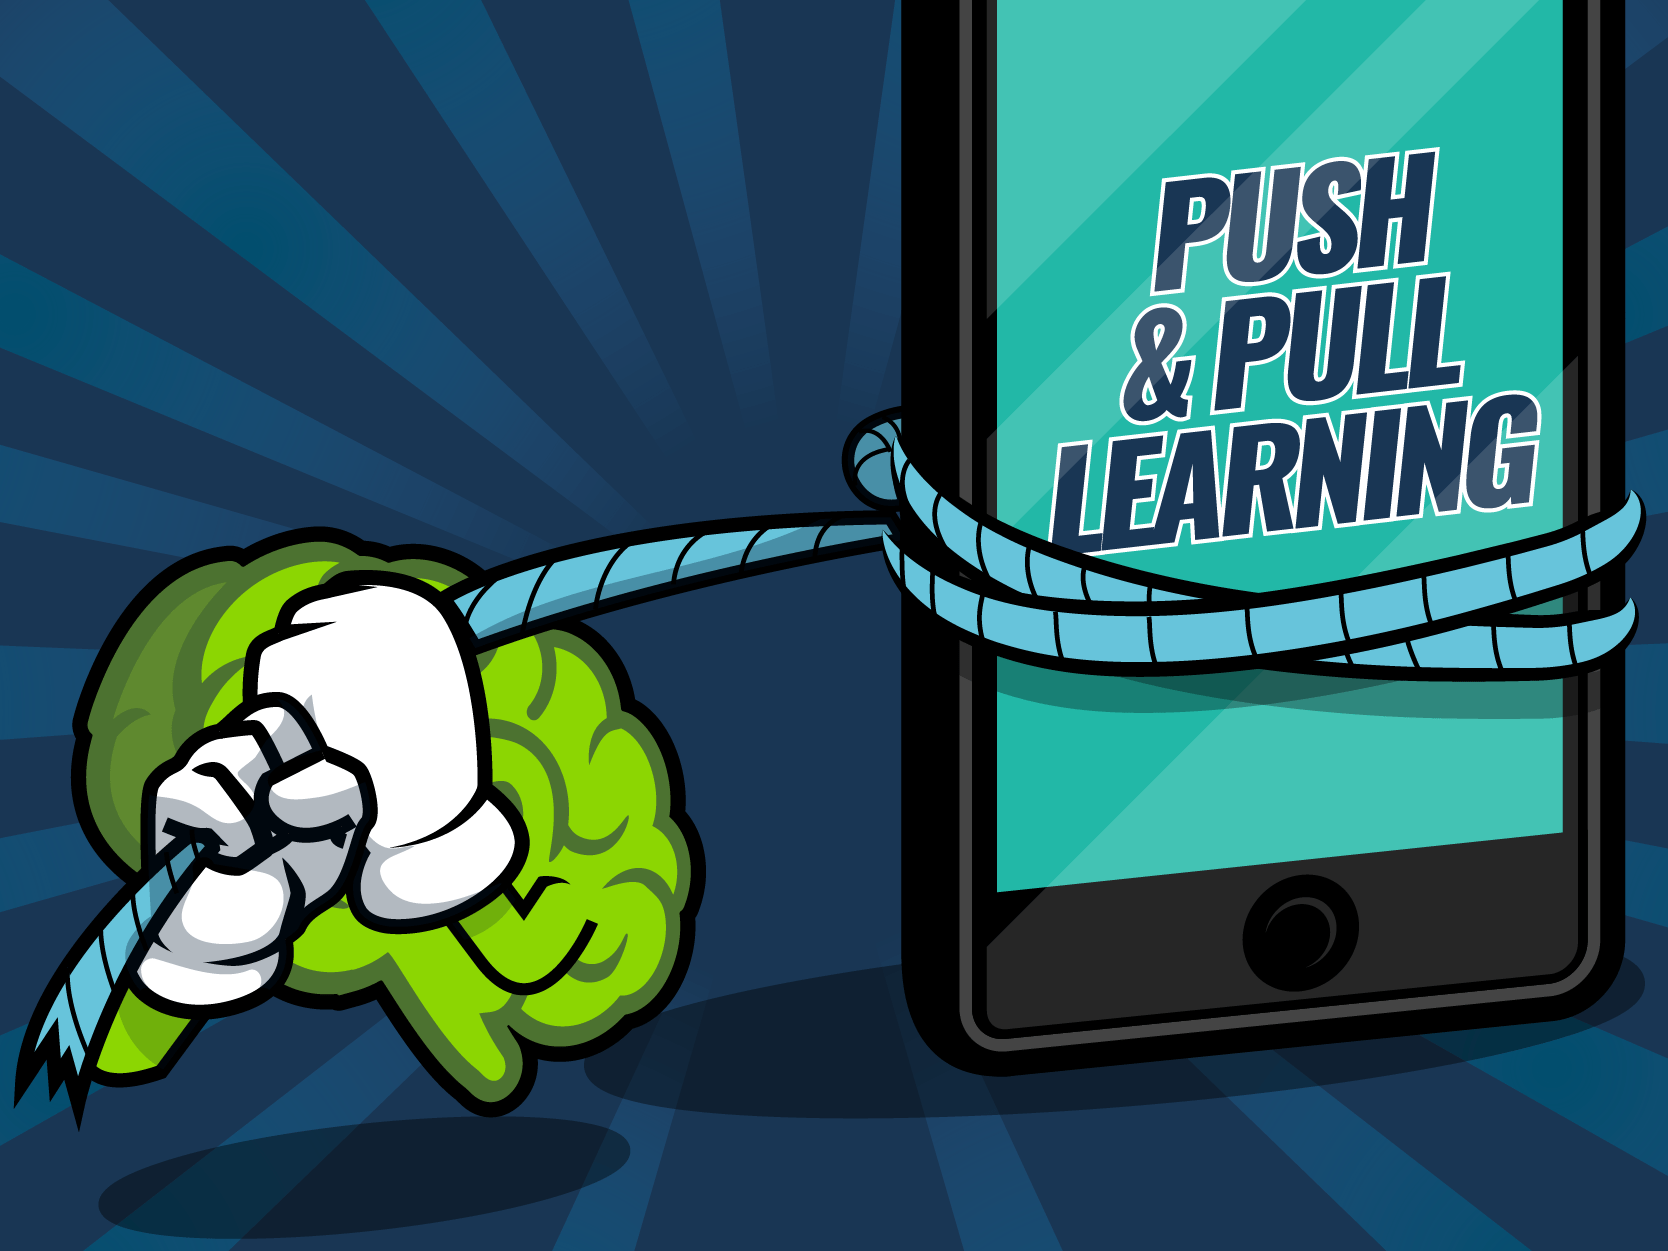 How To Balance Push And Pull Learning With Mobile